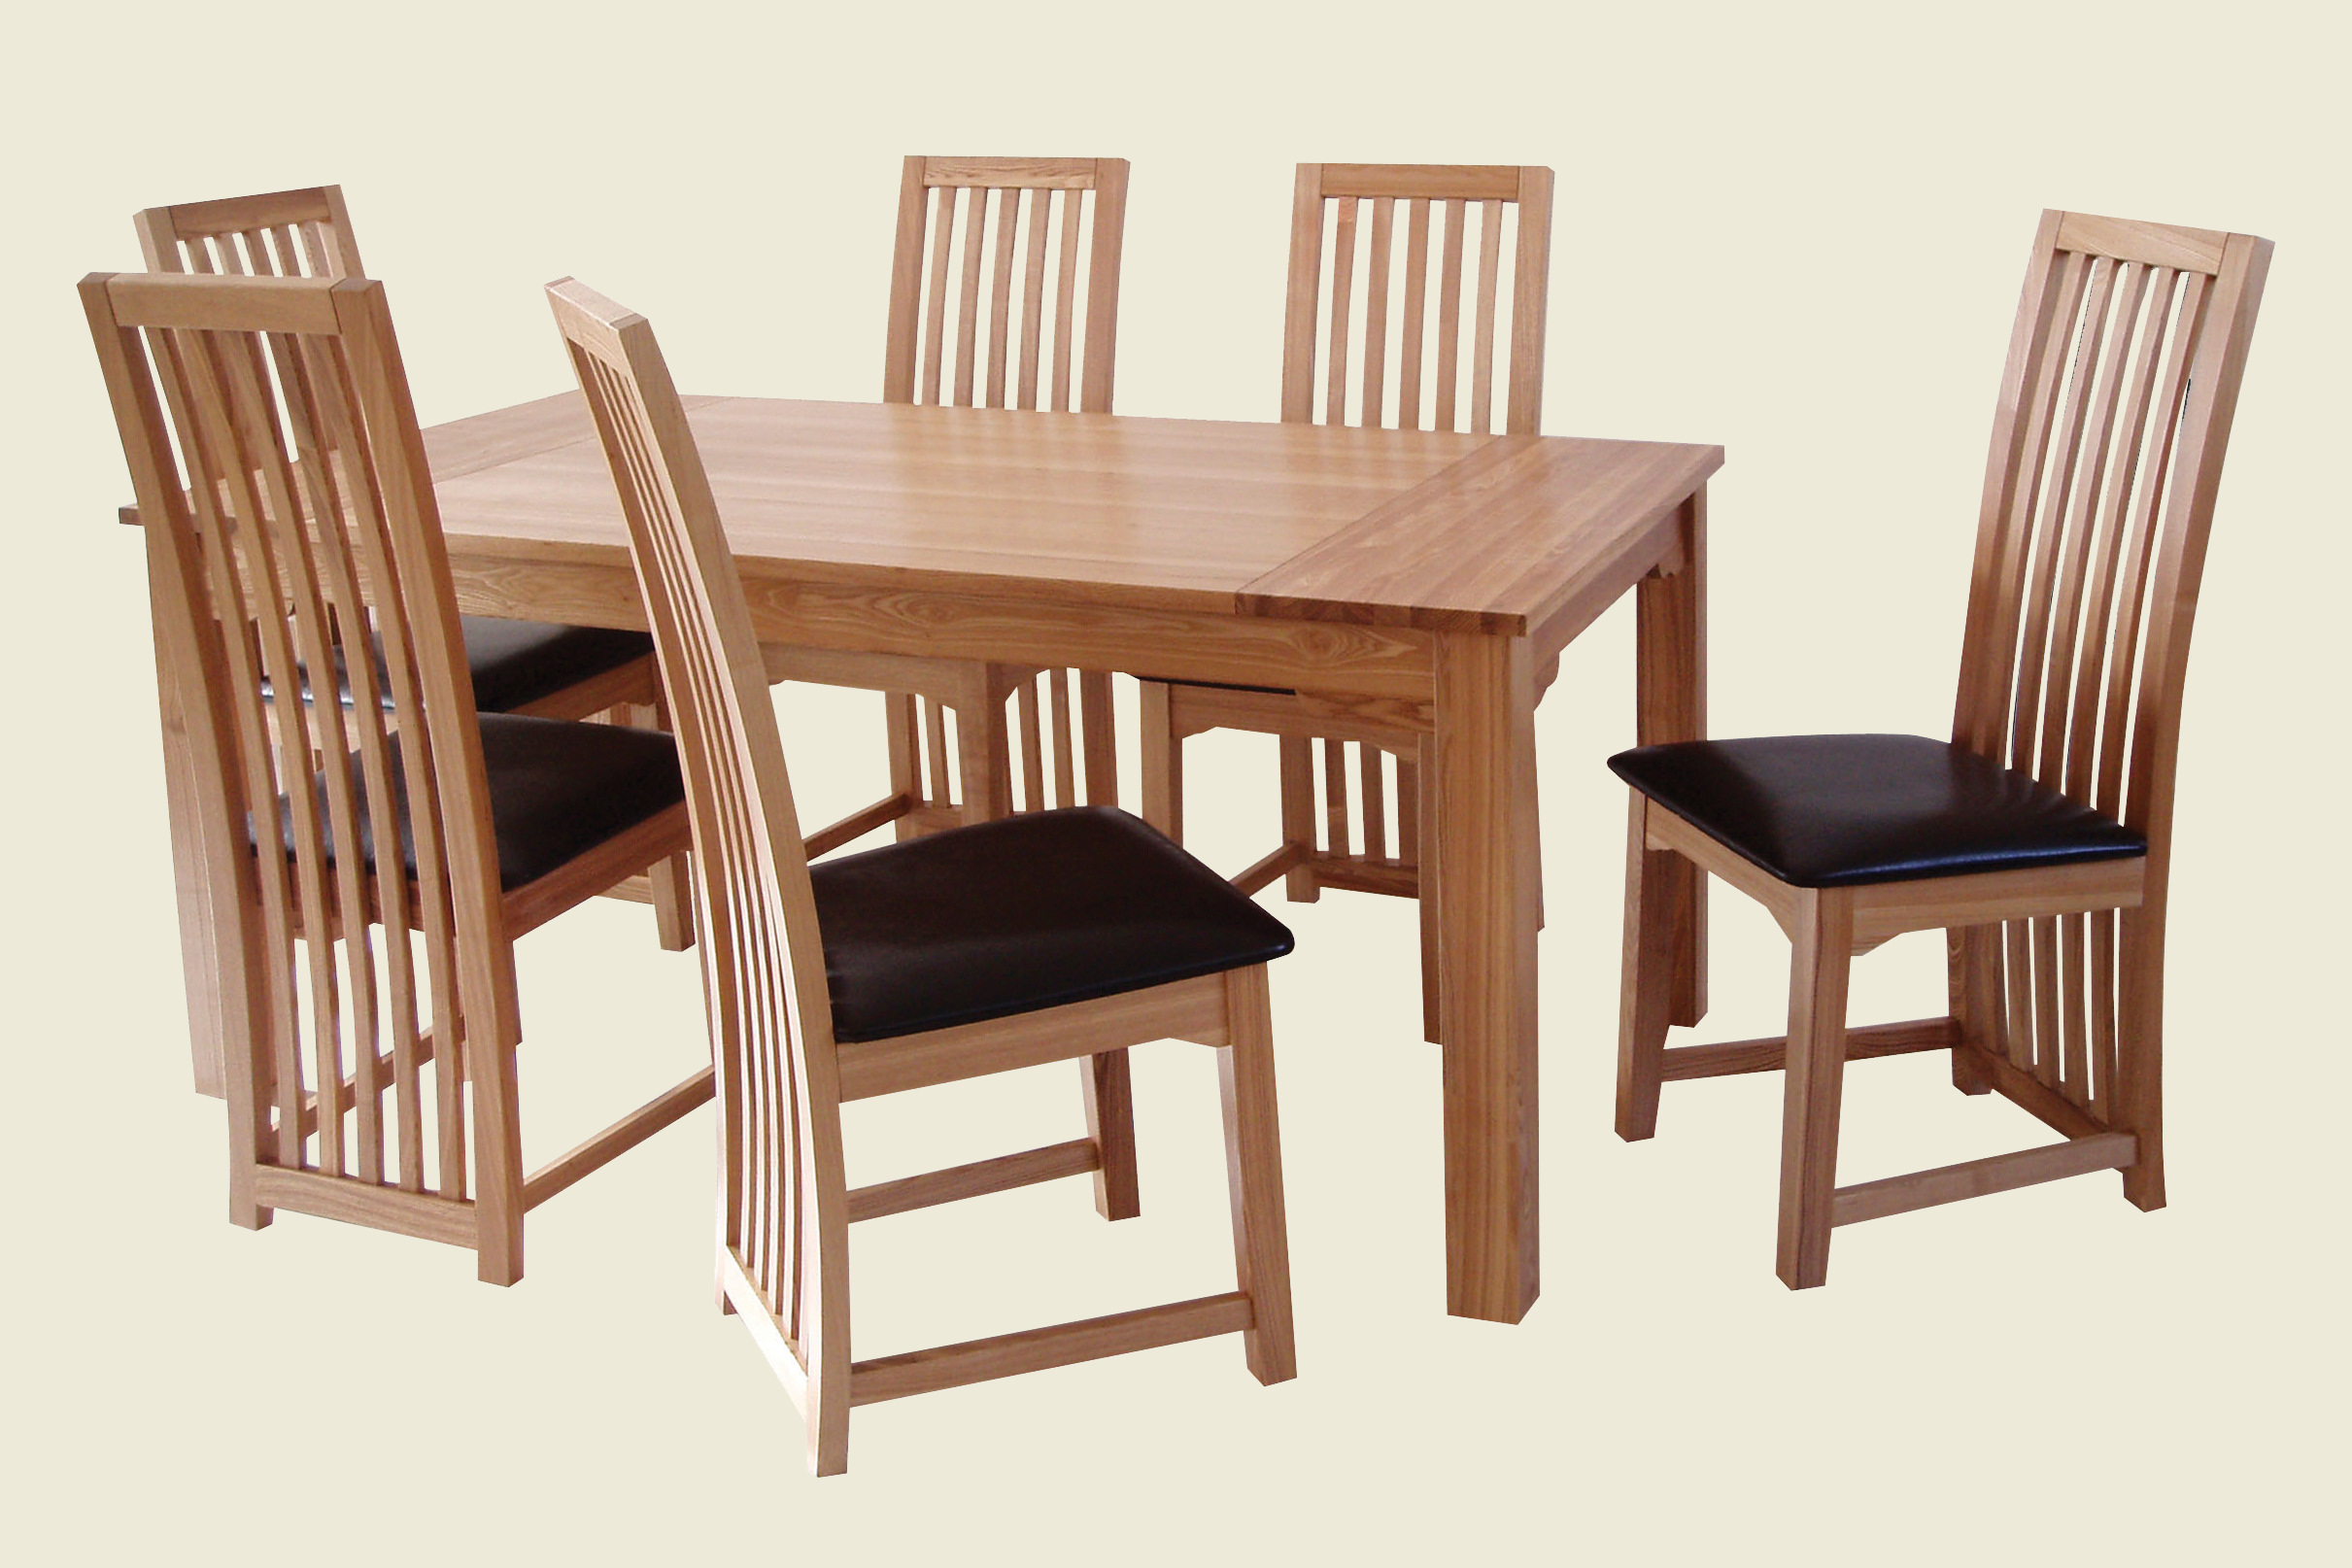 Zz ashbourne dining table 6 chair set for Dining table and 6 chairs